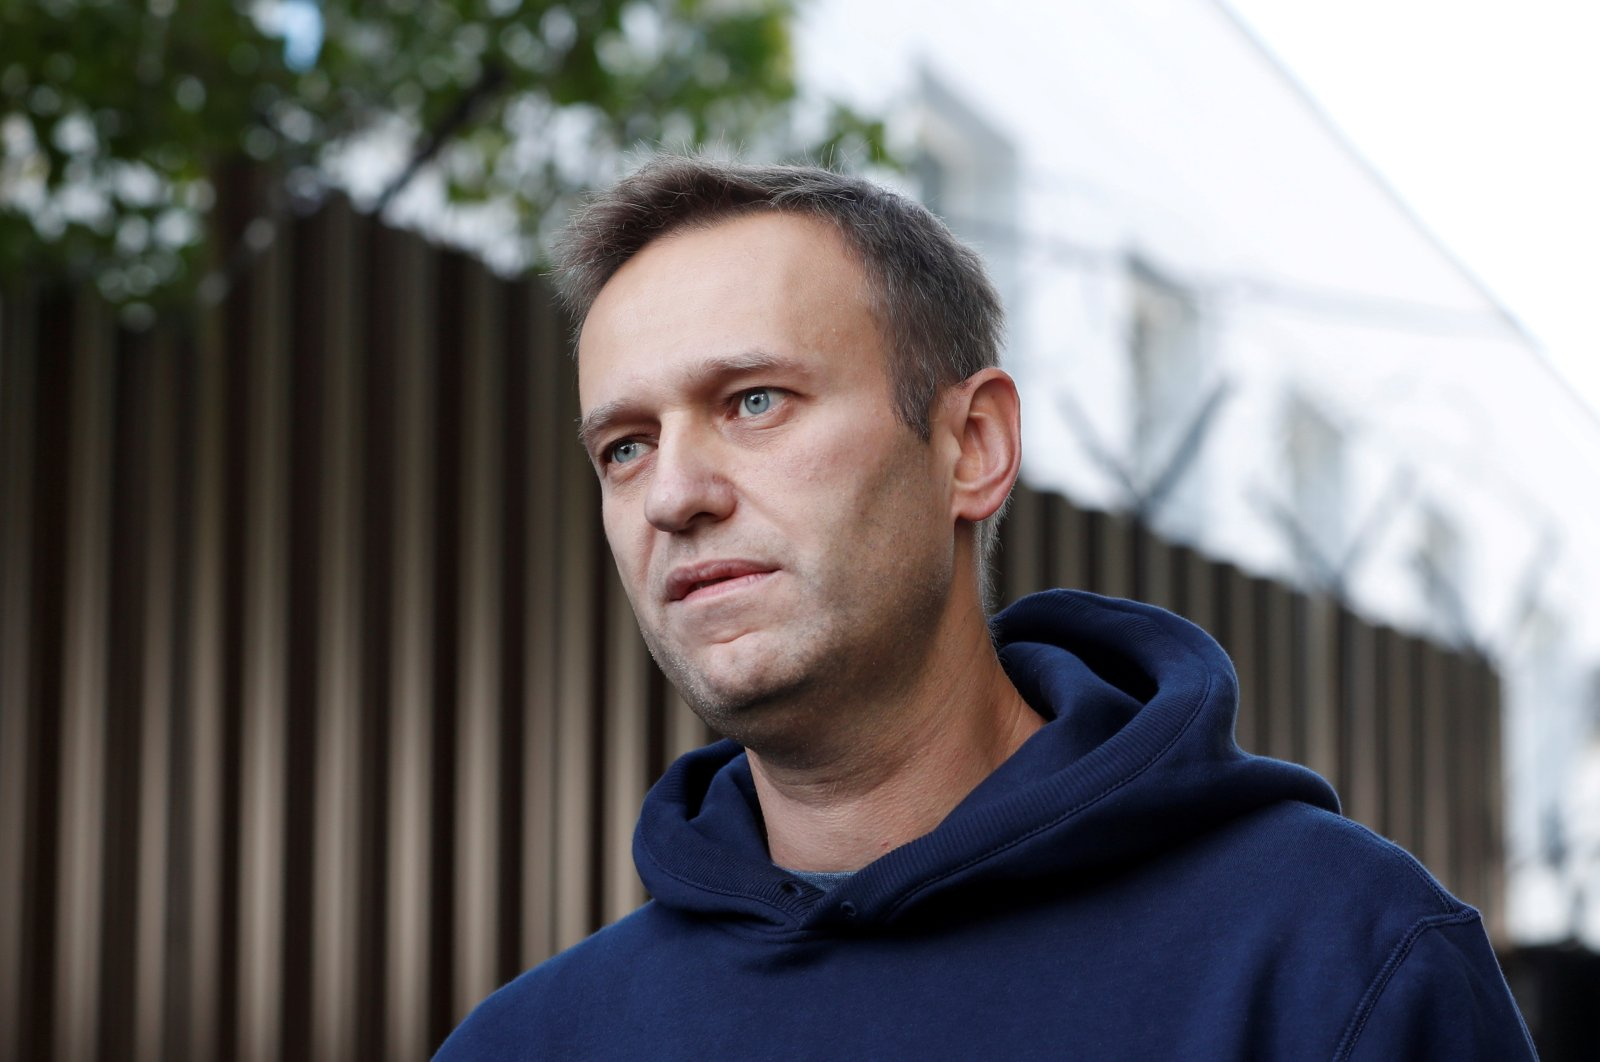 Russian opposition leader Alexei Navalny speaks with journalists after he was released from a detention centre in Moscow, Russia Aug. 23, 2019. (Reuters Photo)